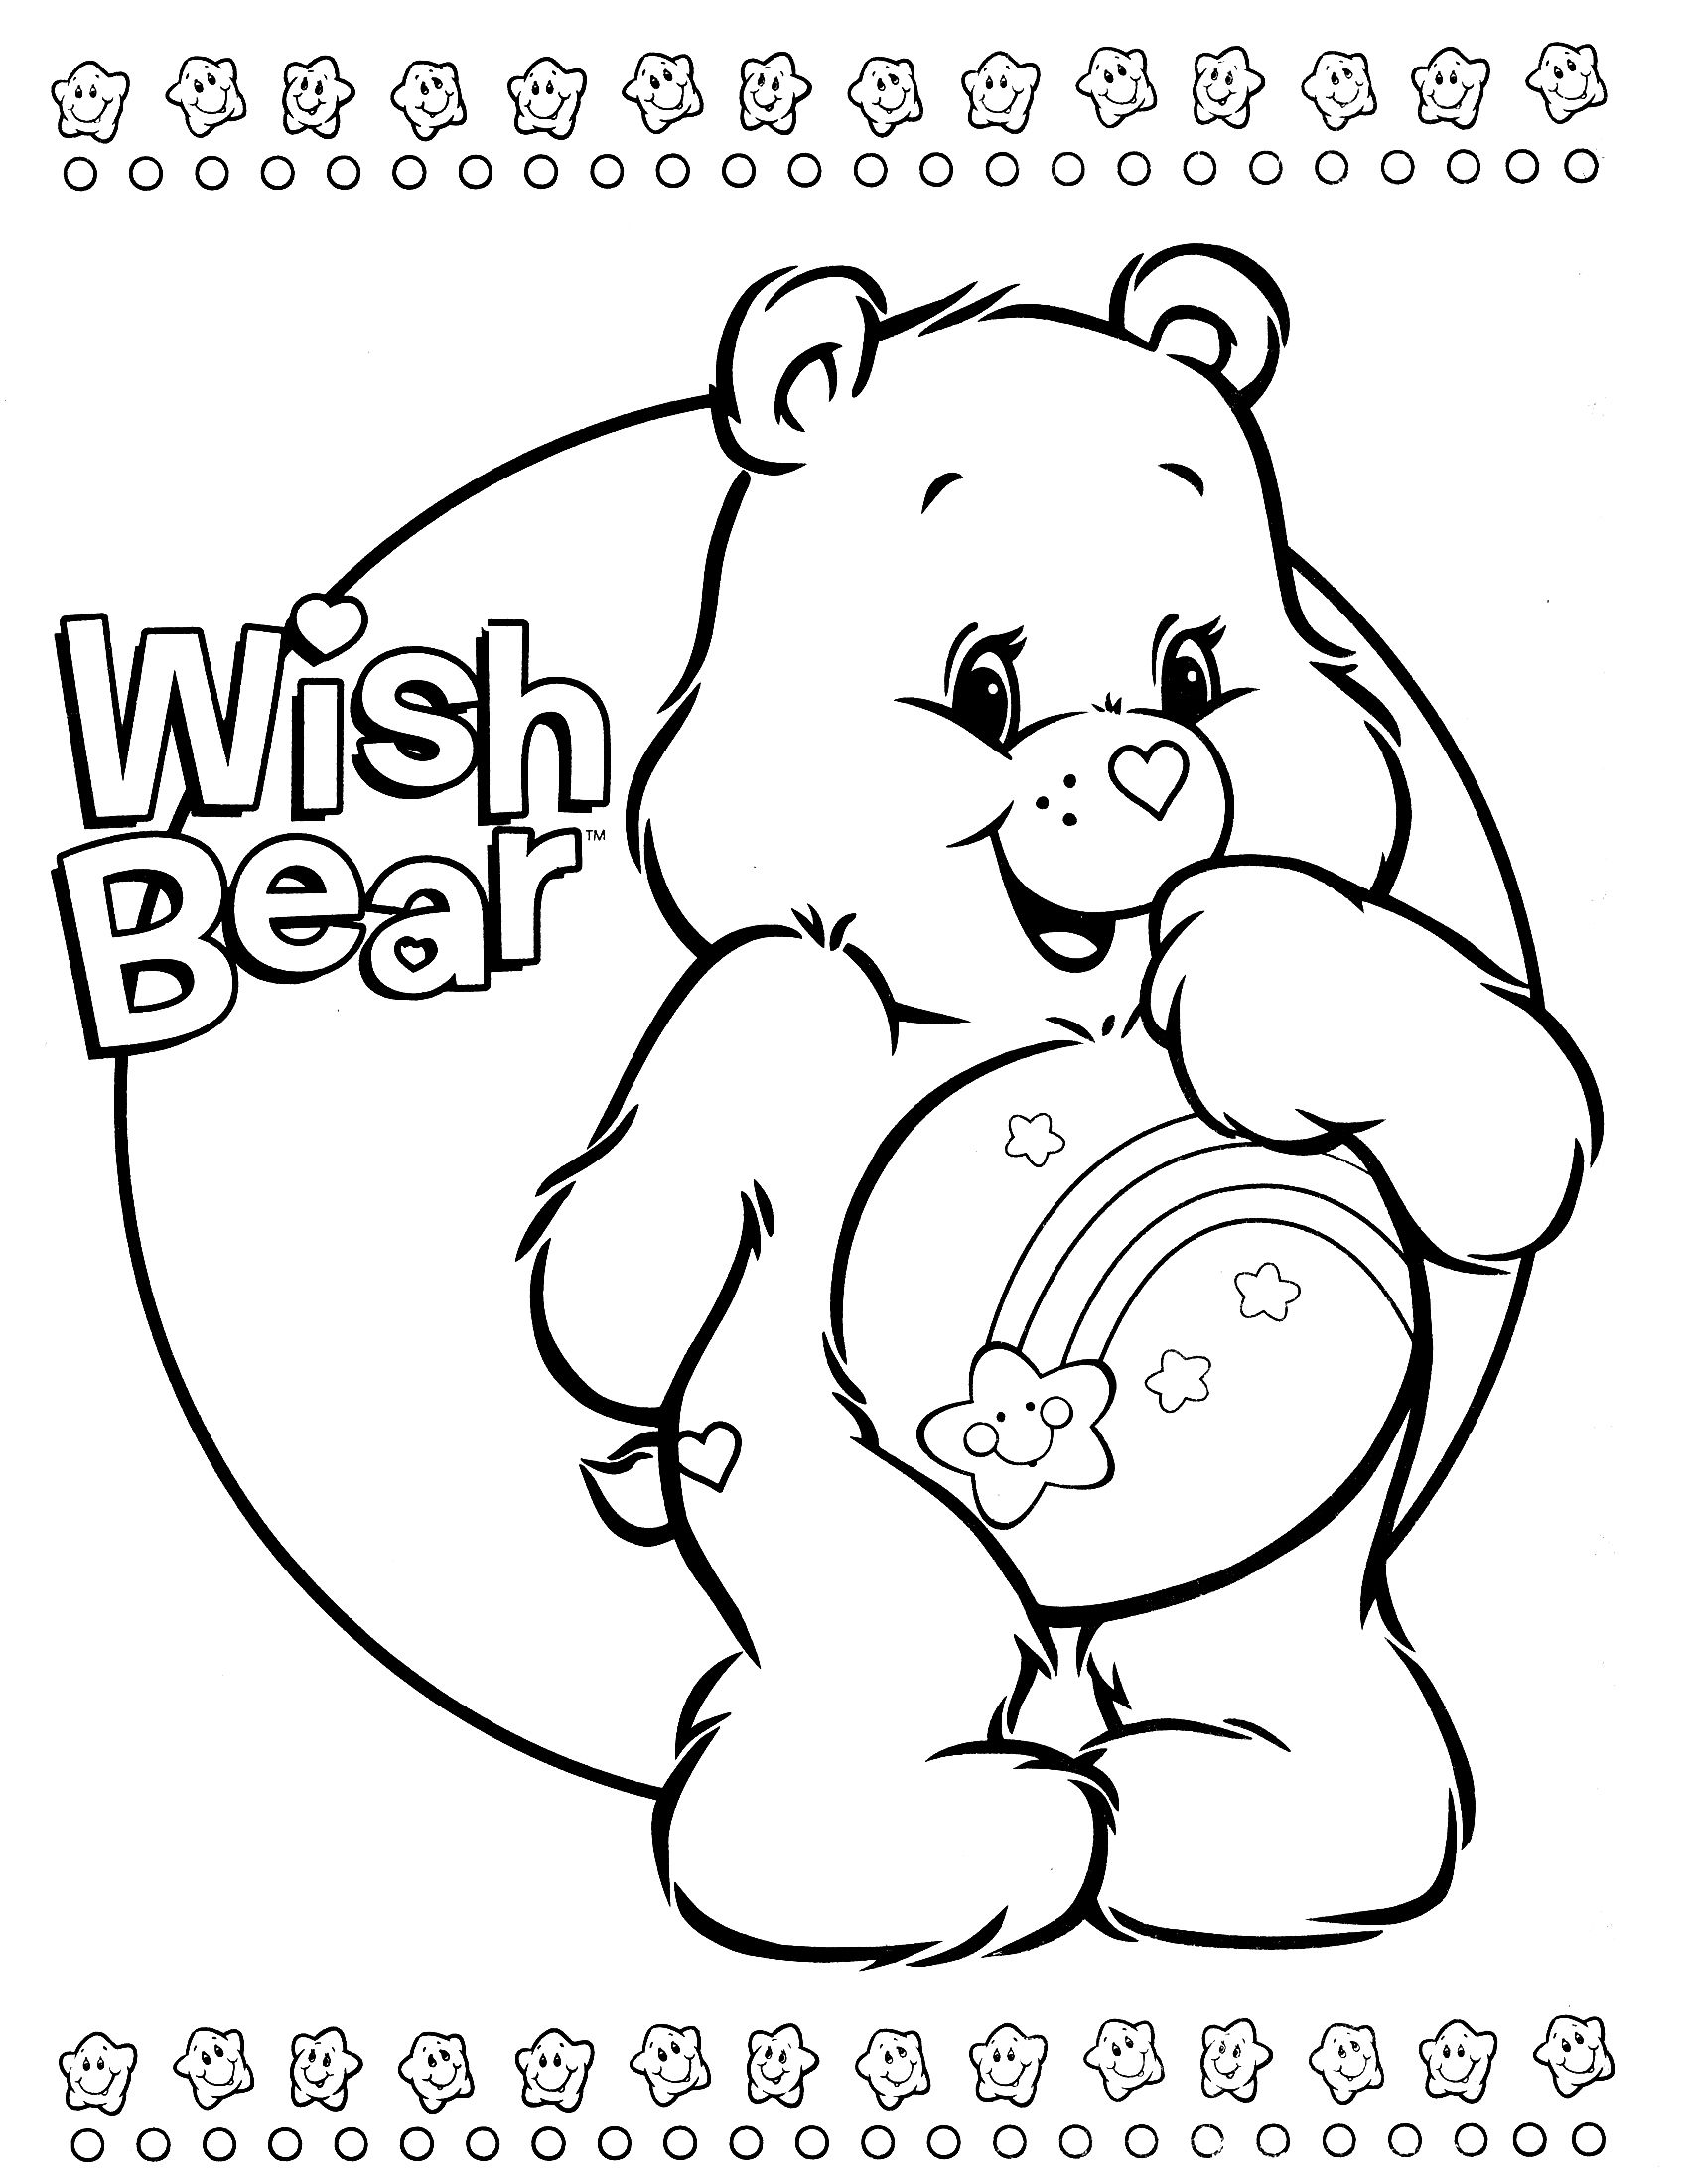 care bears coloring pages to print Danny Phantom Tale Coloring